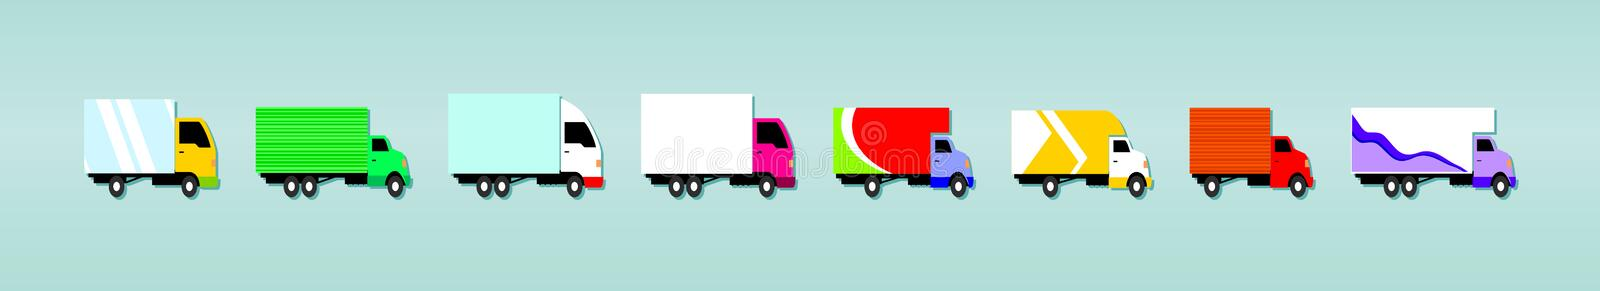 Cartoon Moving Truck Stock Illustrations 2 546 Cartoon Moving Truck Stock Illustrations Vectors Clipart Dreamstime